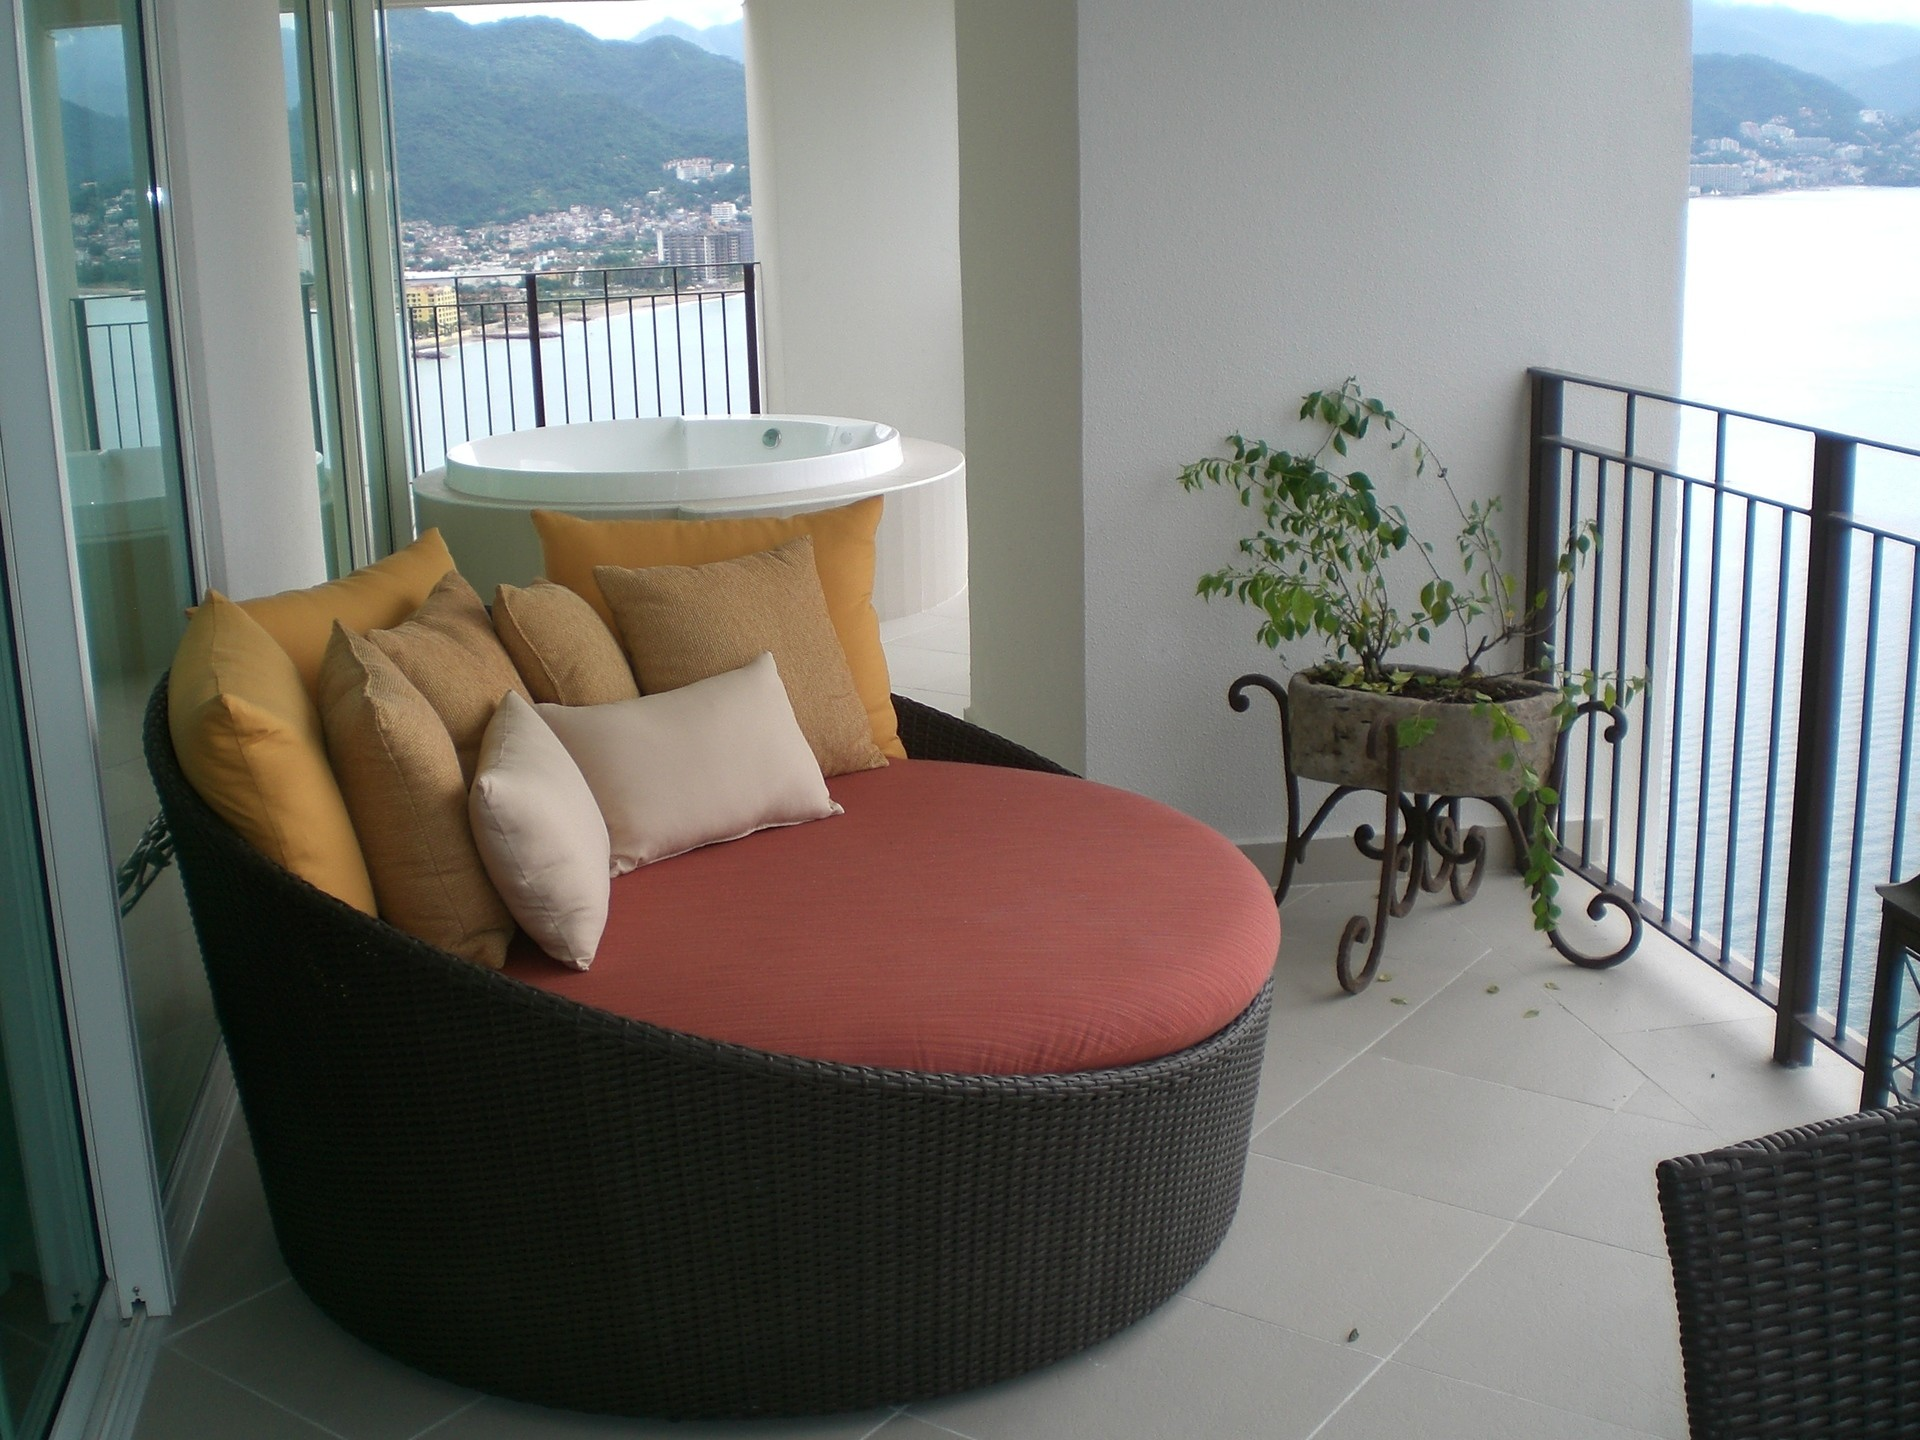 This Grand Venetian Vacation Condo for Rent has a stylish daybed on the patio to unwind by by the amazing view